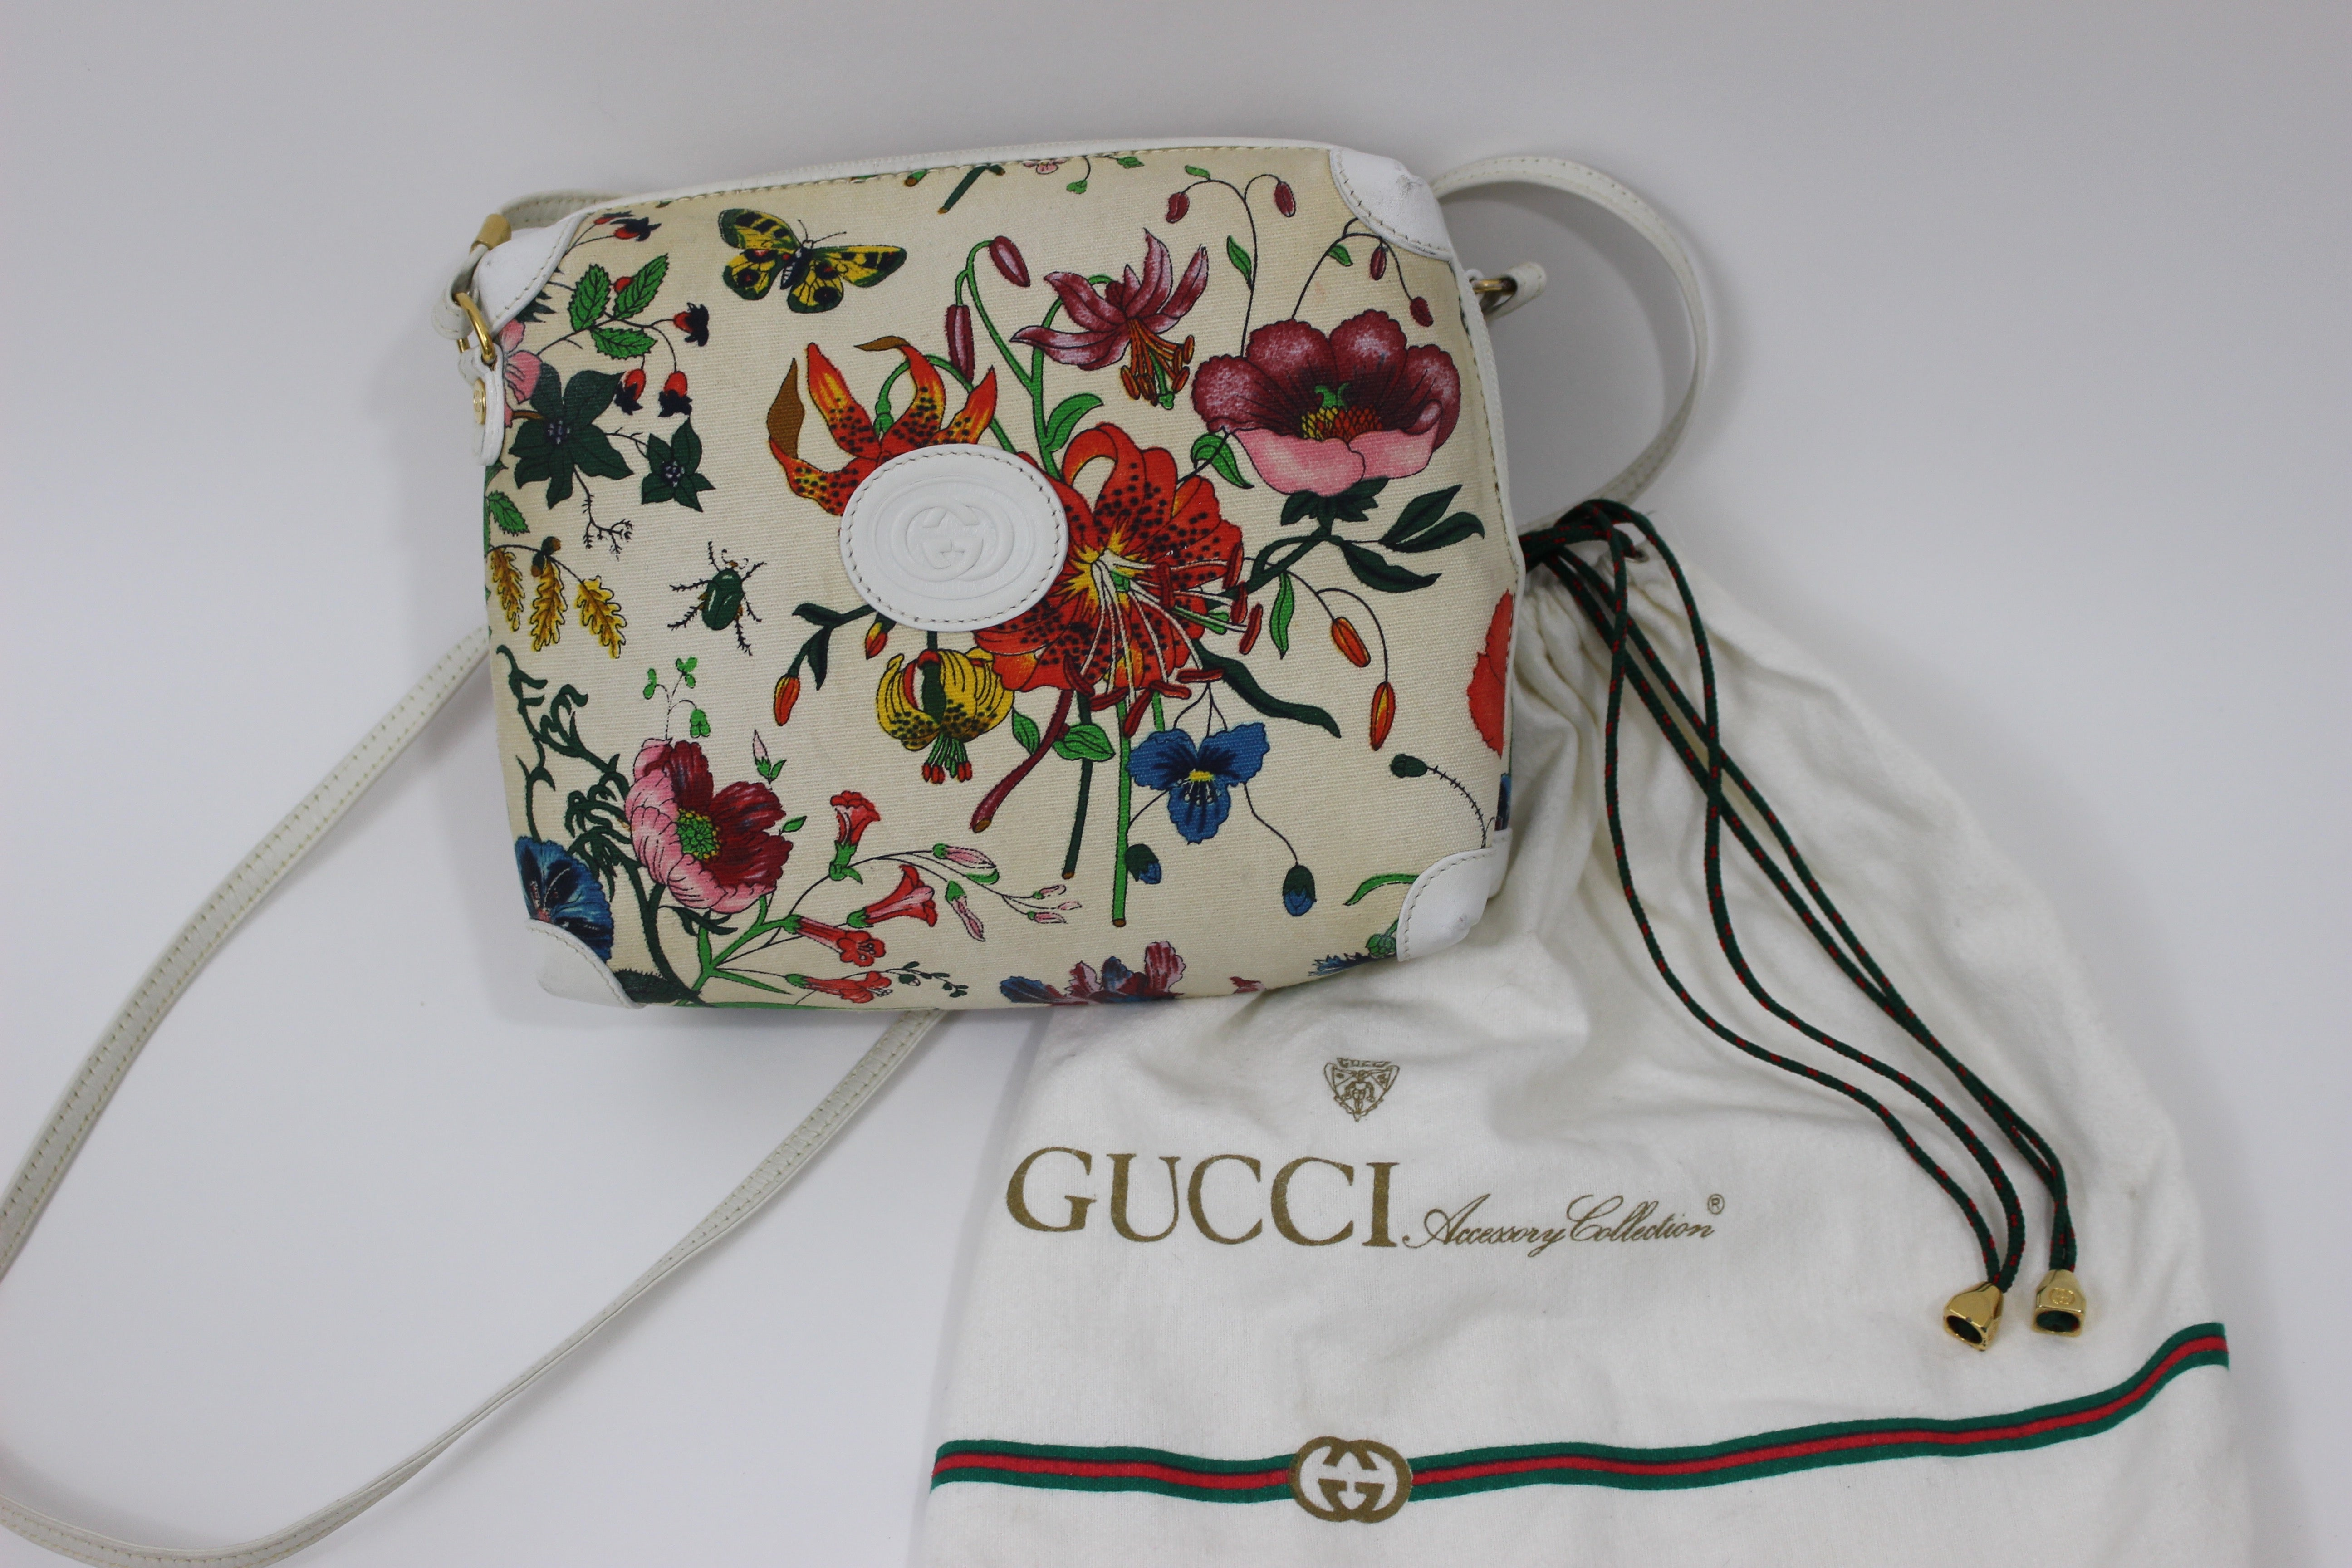 525664f0b0c8 Vintage Gucci Floral Canvas White Leather Cross Body Shoulder Bag Purse at  1stdibs